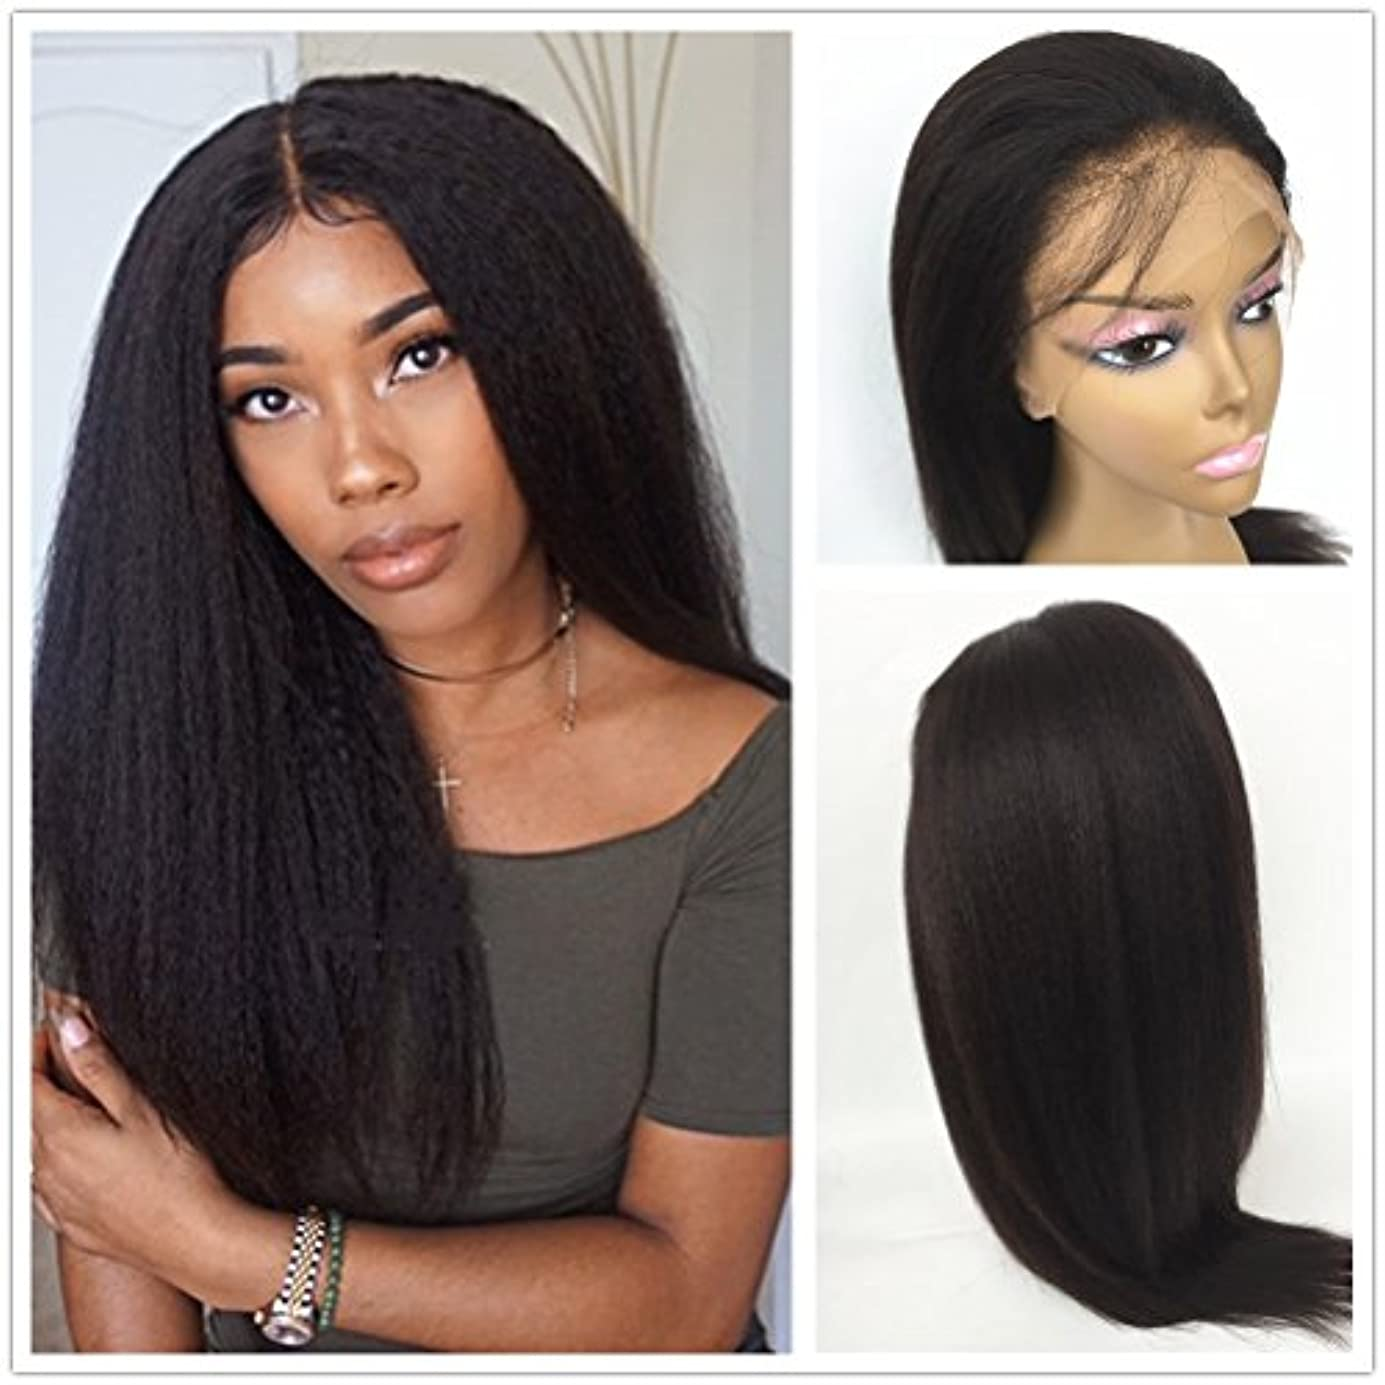 JYL Hair Italian Yaki 360 Lace Frontal Wig Pre Plucked Bleached Knots 150% Density Lace Front Human Hair Wigs For Women 360 Lace Wig Lace Front Wigs Human Hair with Baby Hair (14